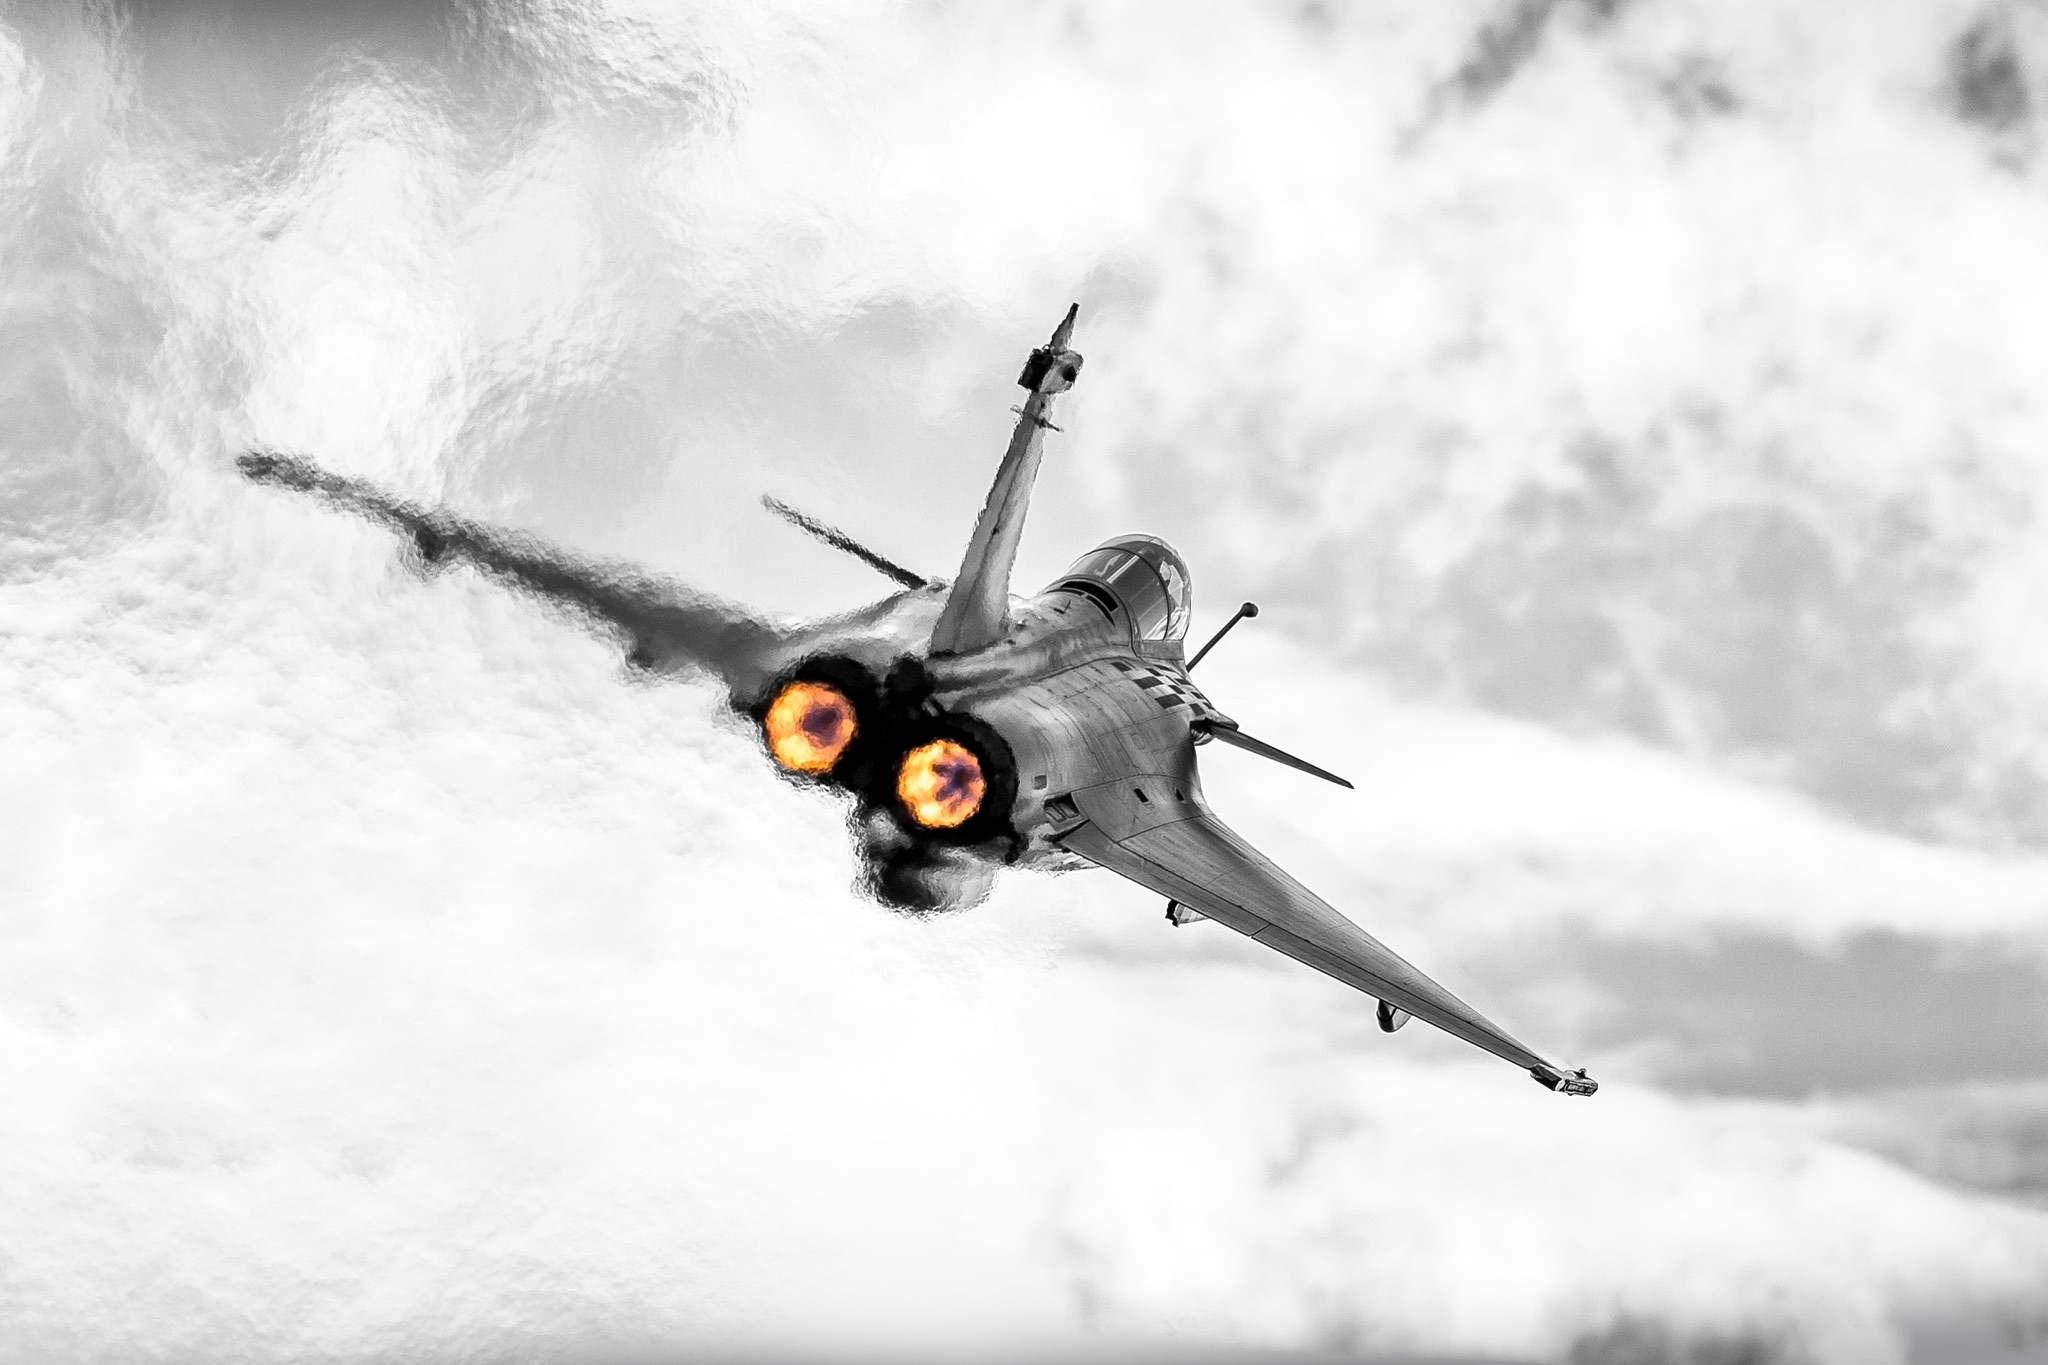 Photographie avion rafale